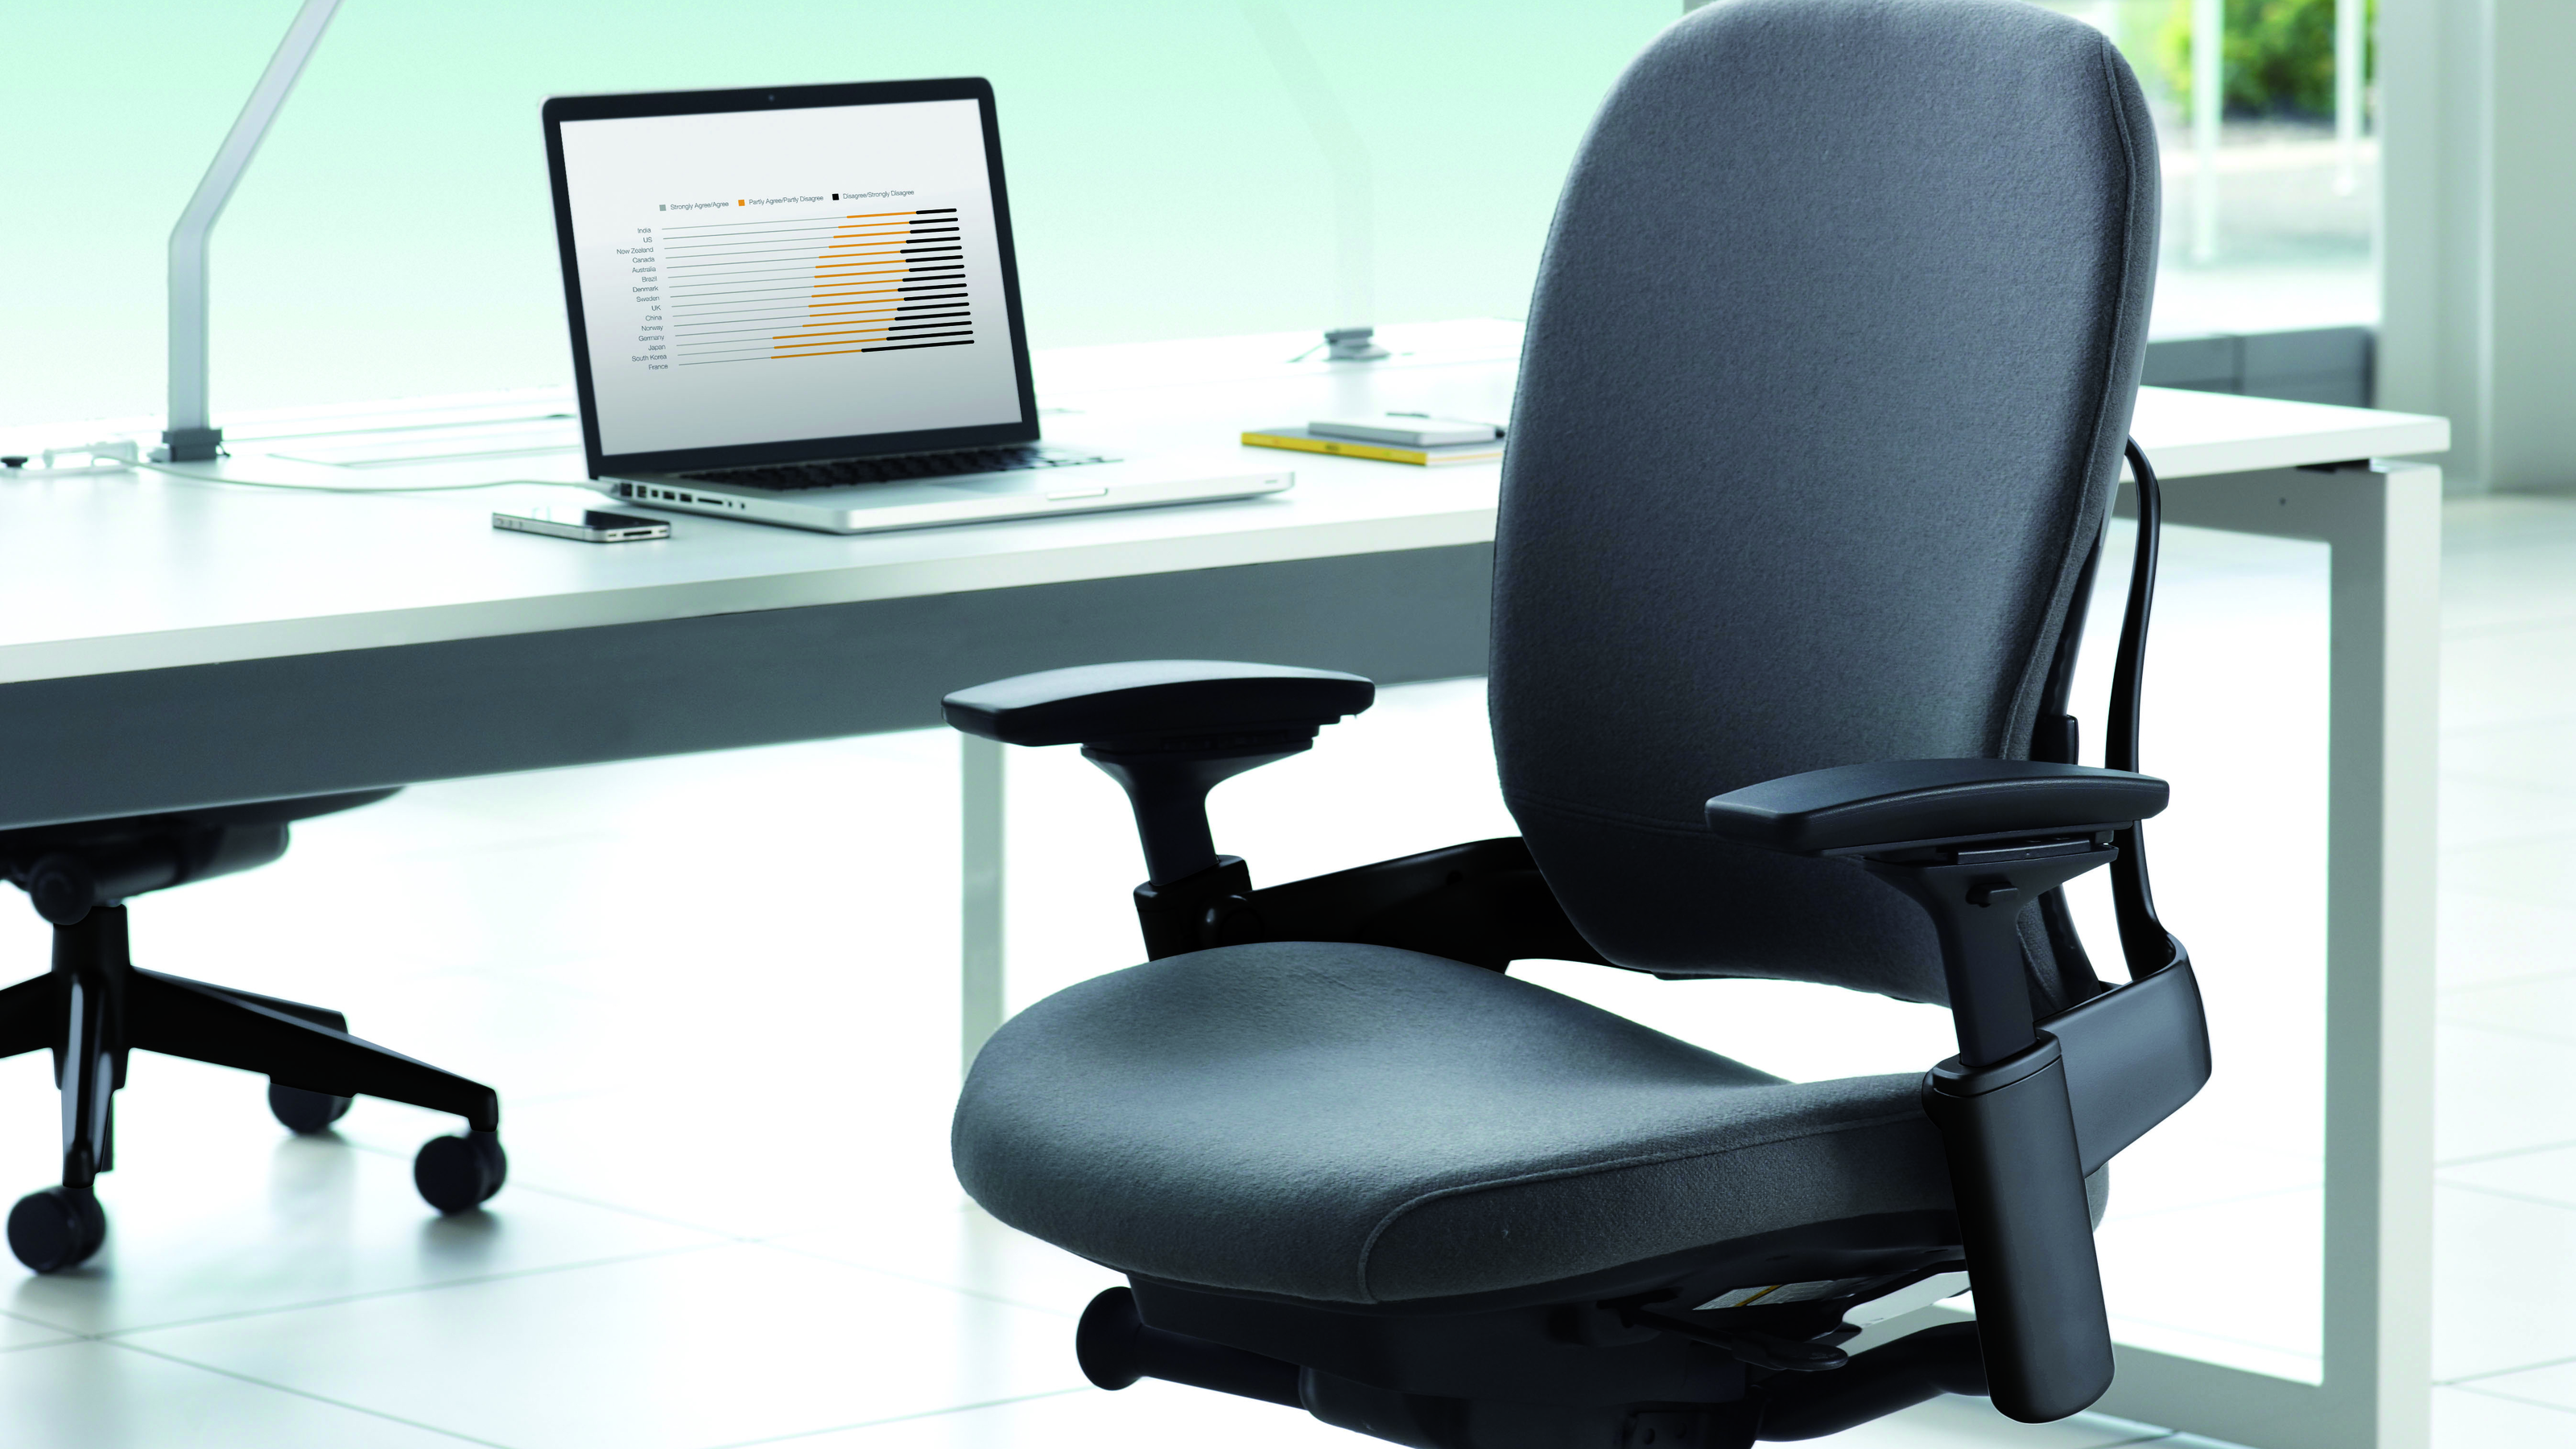 steelcase leap chair high that clips on table ergonomic and adjustable office